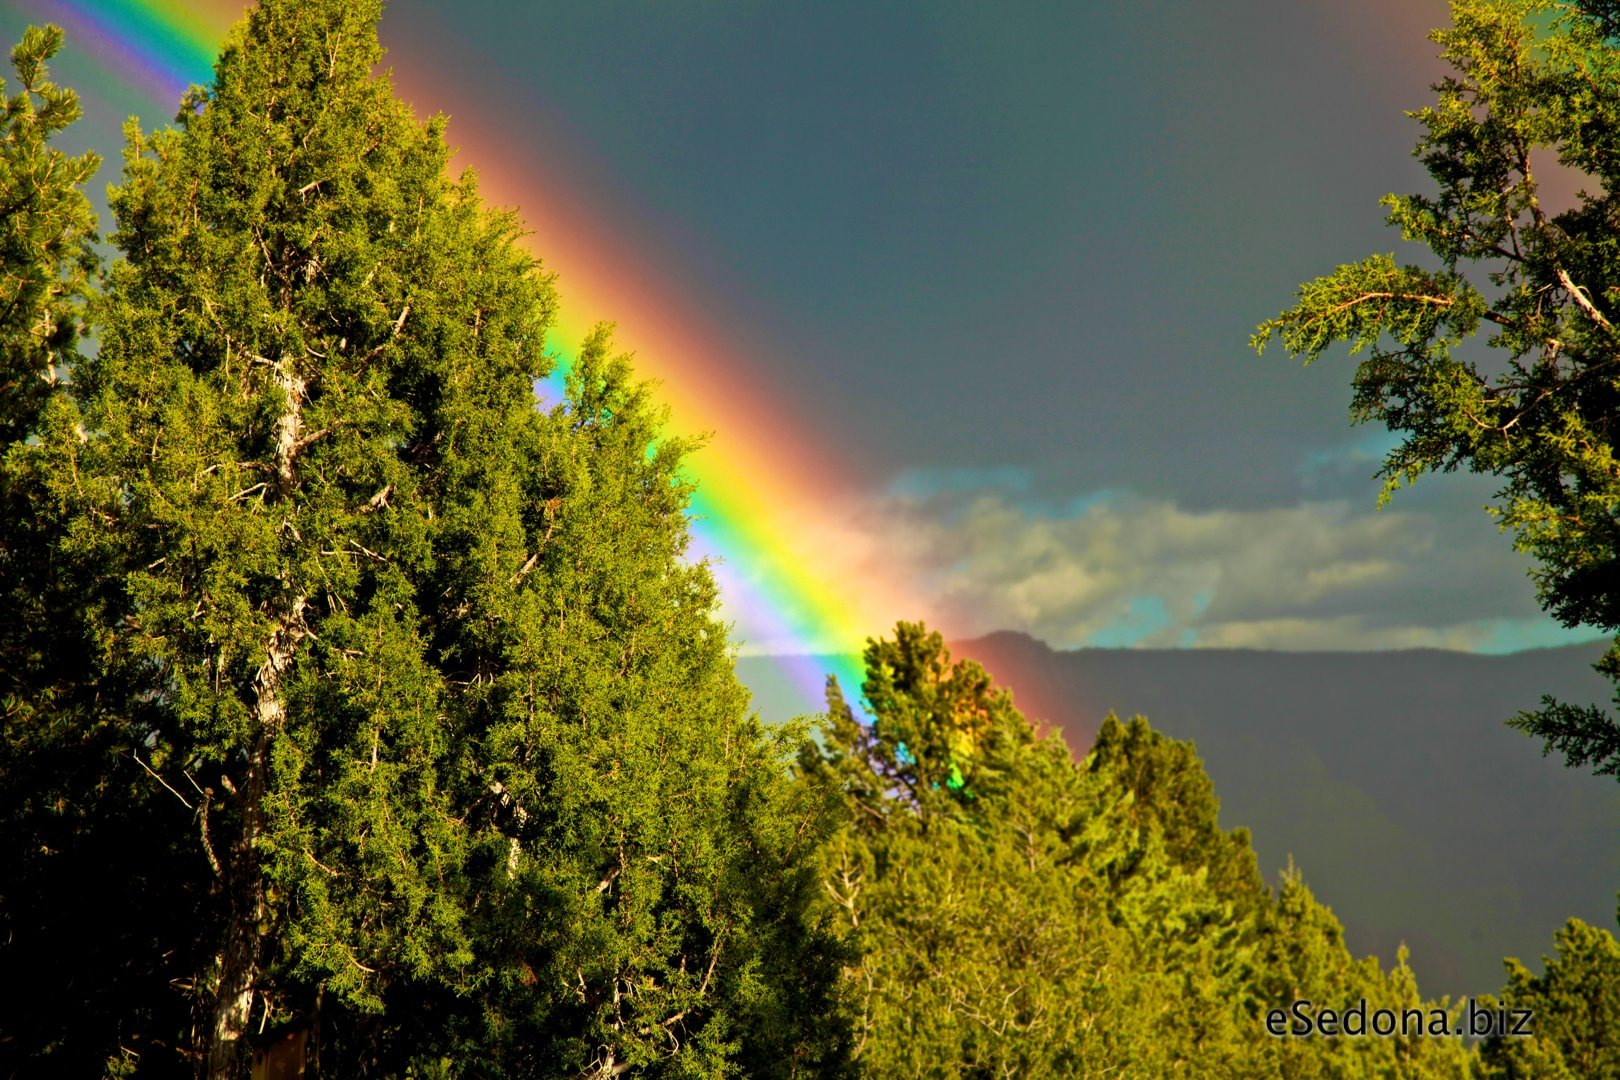 essay about rainbow Rainbow : rainbow is a natural phenomenon that happens after rain rainbow consists of seven colors the colors together form a thick band which makes it beautiful the seven colors of rainbow are: violet, indigo, blue, green, yellow, orange and red.